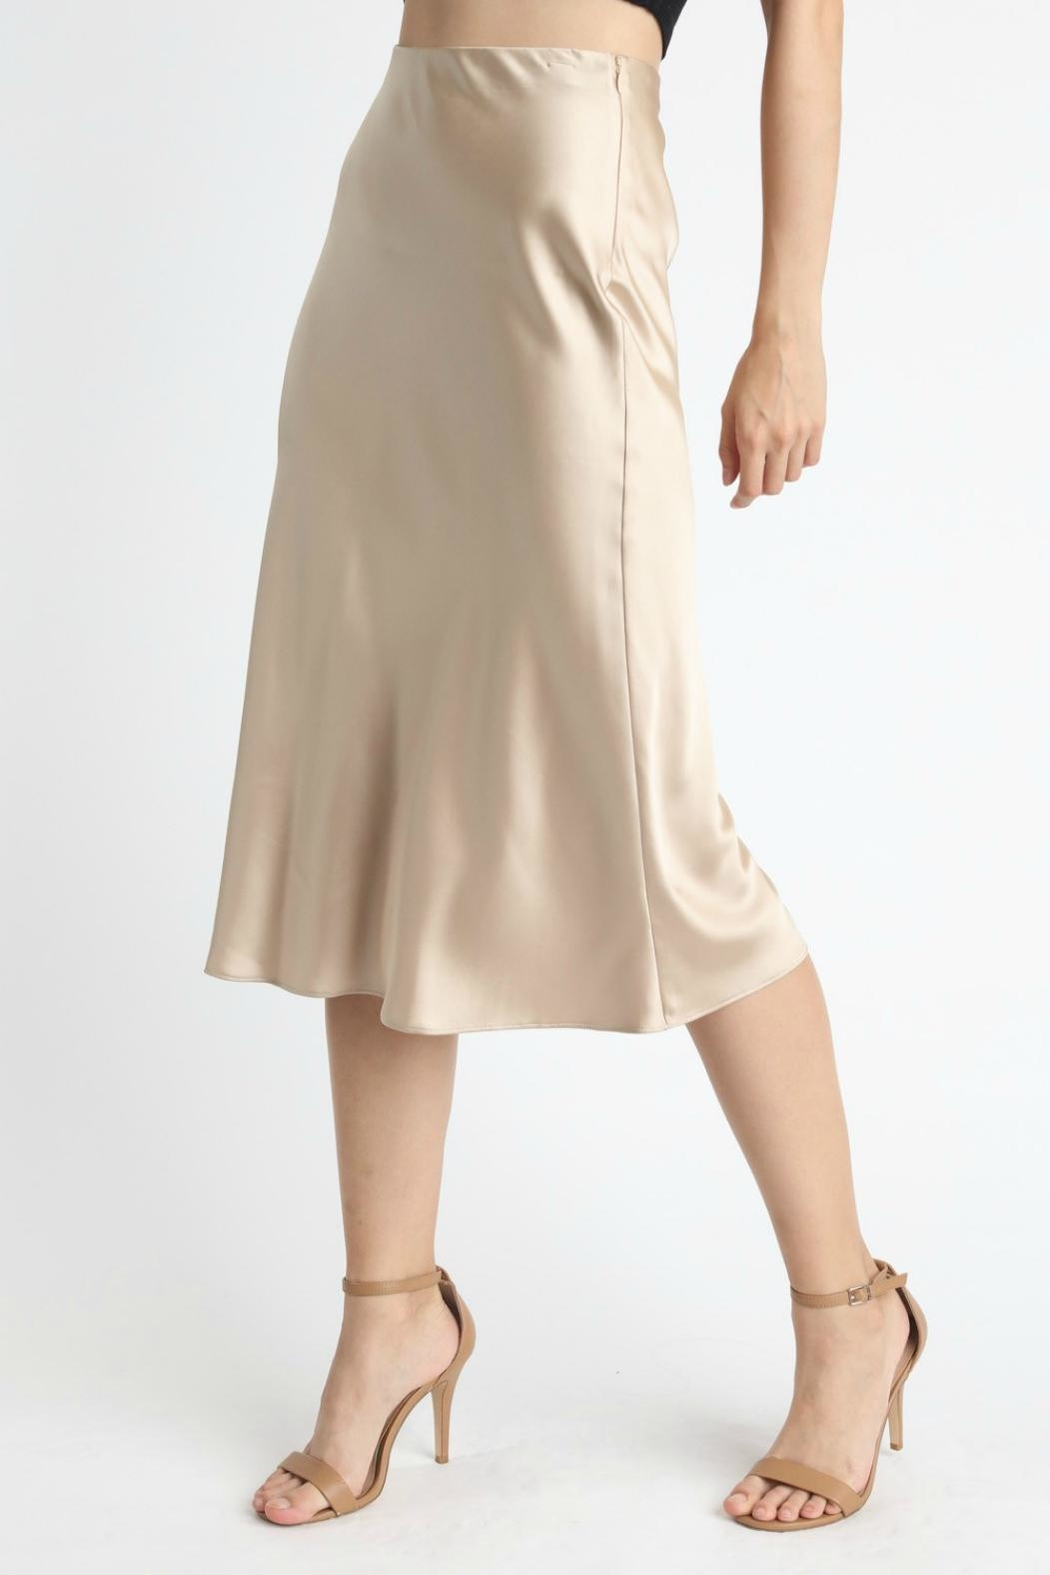 Pretty Little Things Satin Midi Skirt - Main Image